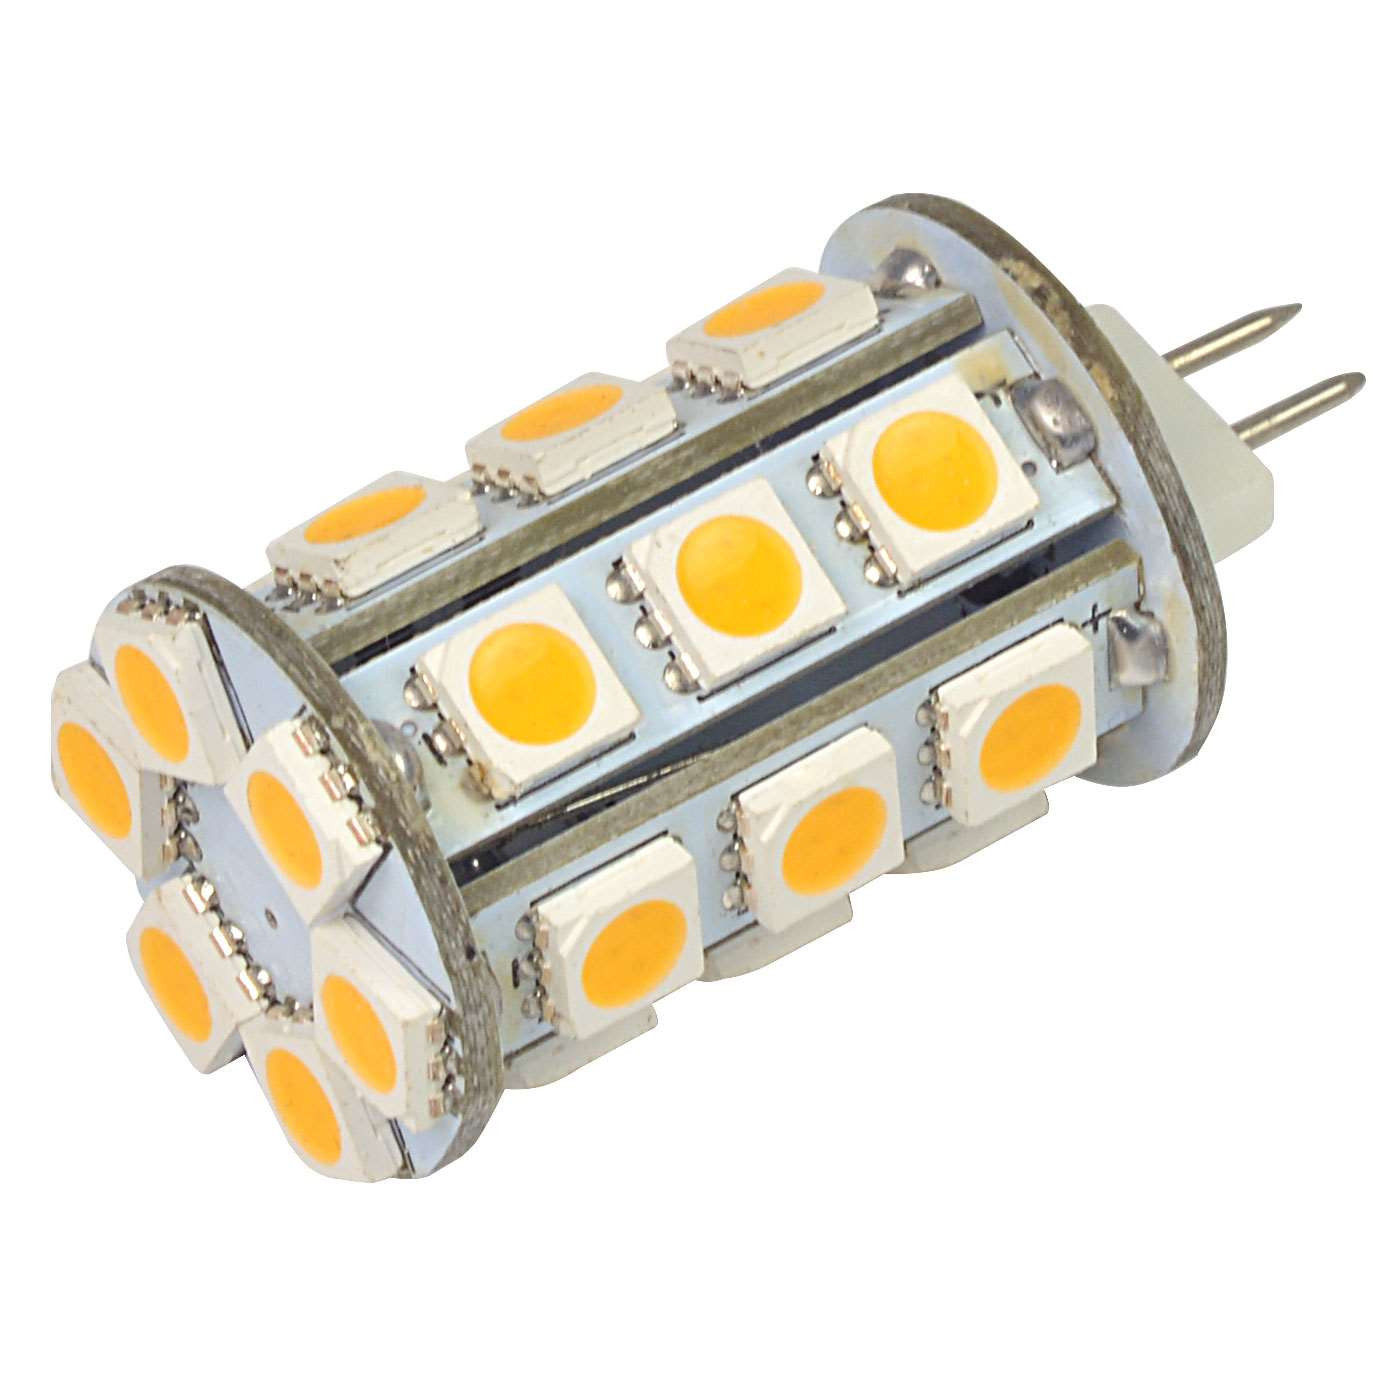 Led Birnen G4 G4 4w Led Light 24x 5050 Smd Leds Led Bulb In Warm White